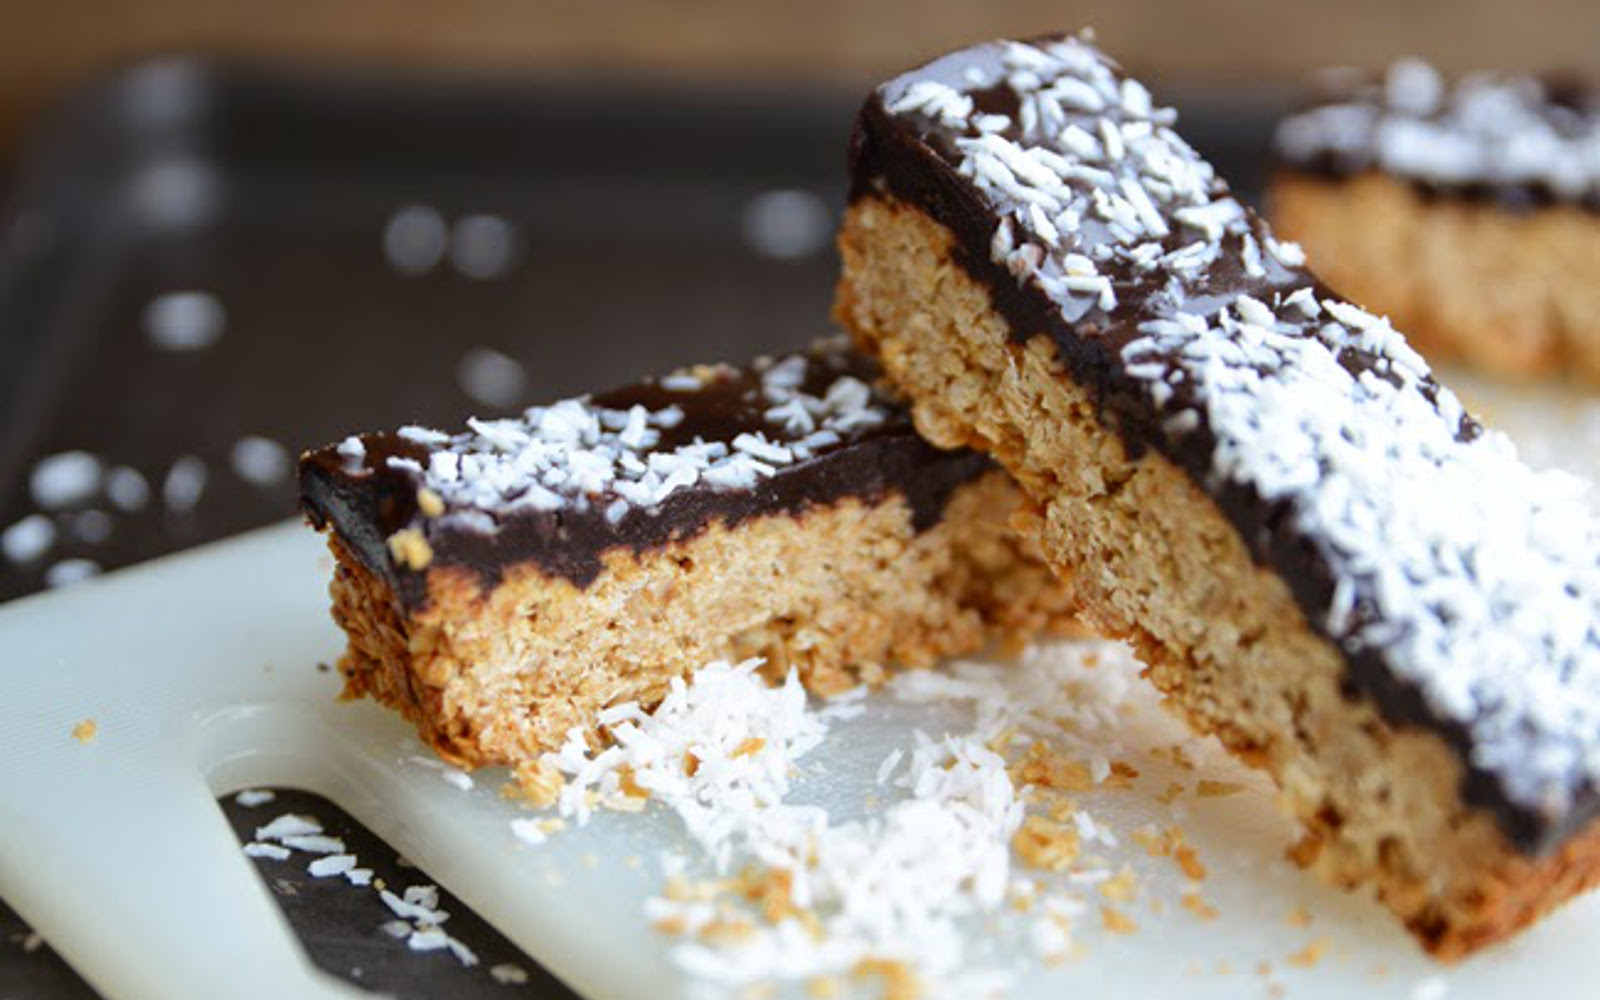 Caramel and Coconut Oat Bar with Homemade Chocolate